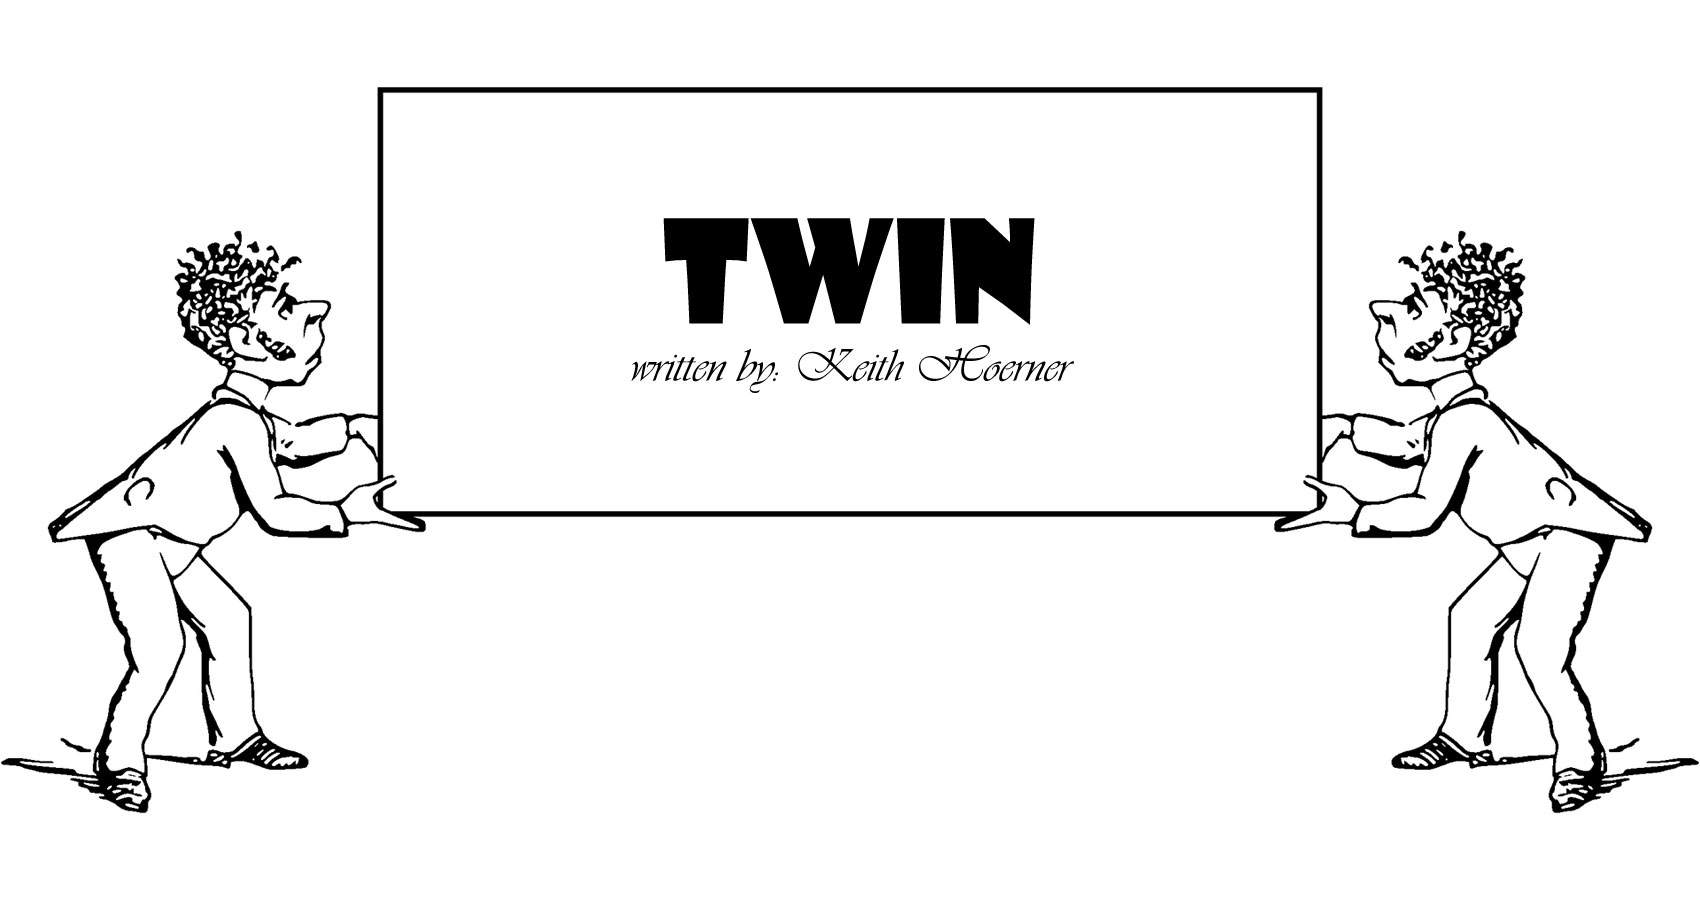 Twin written by Keith Hoerner at Spillwords.com